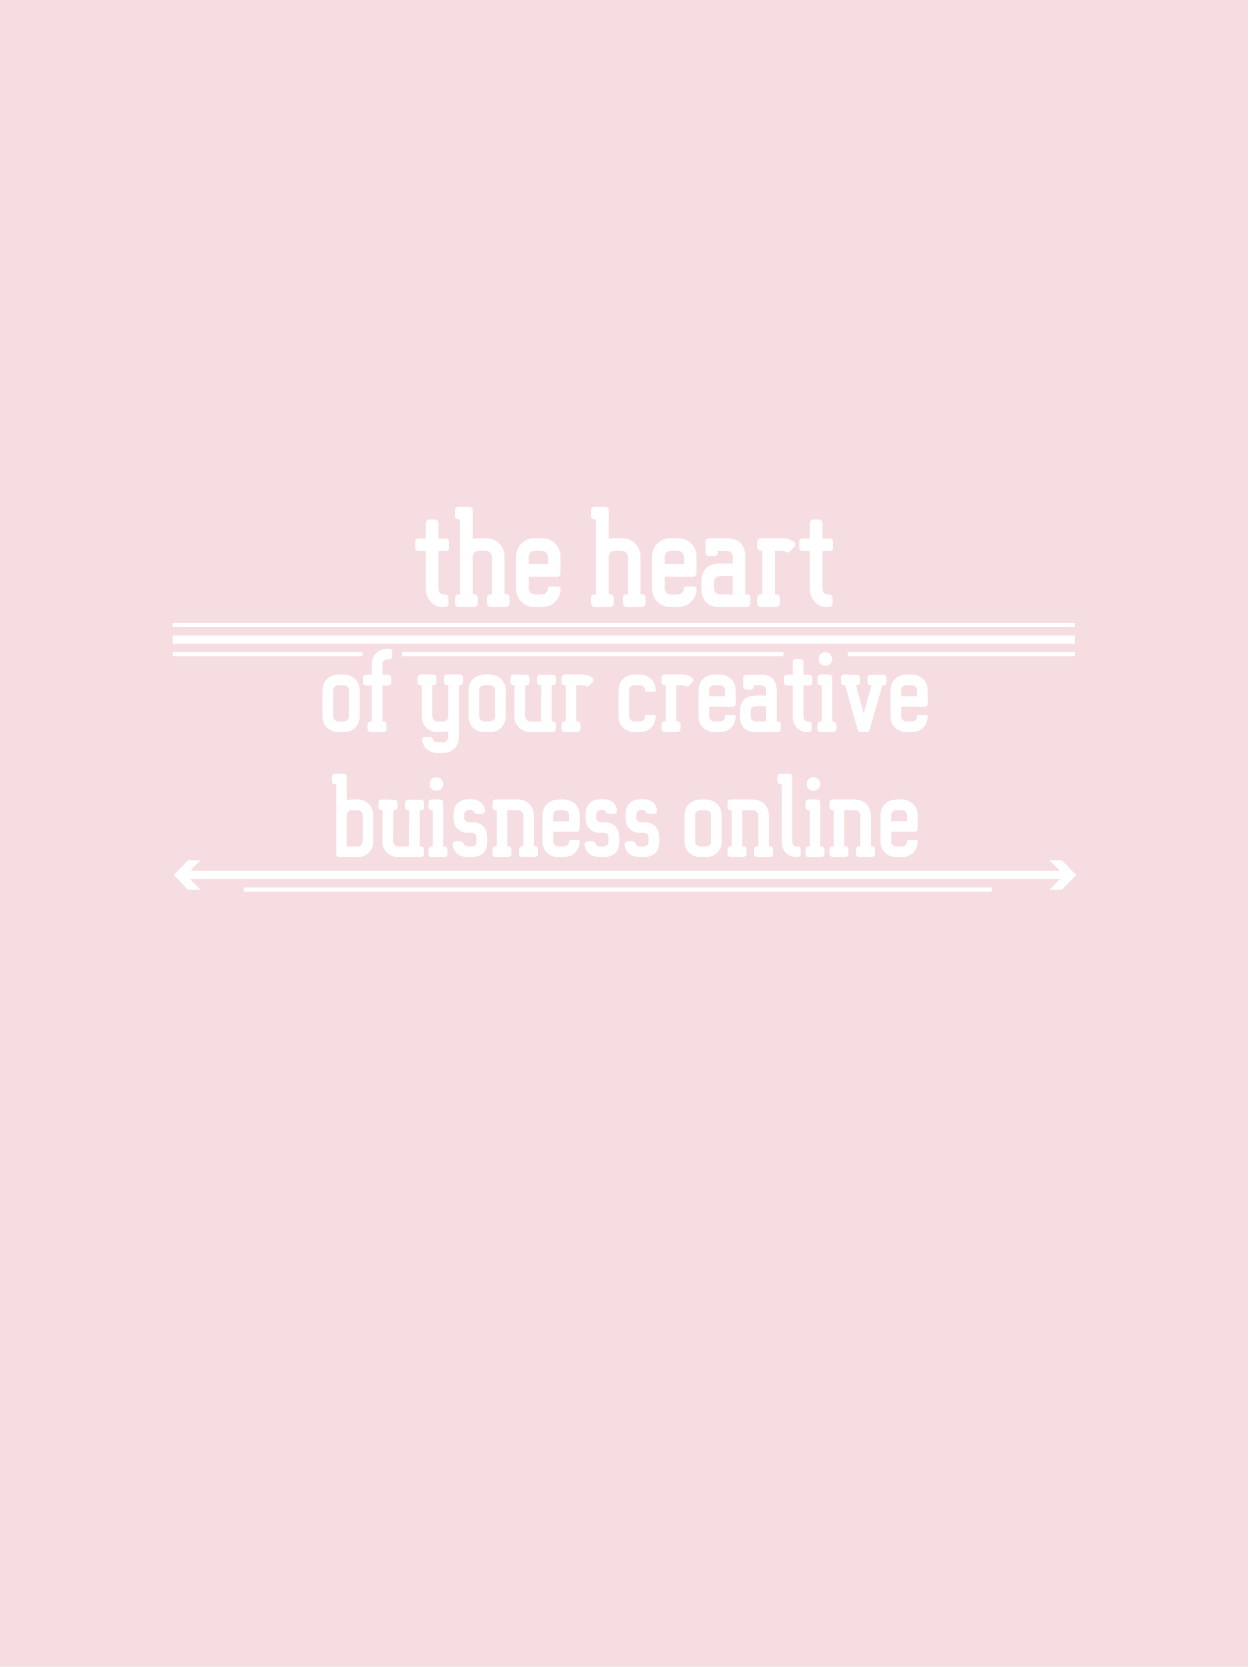 the BIZ school for creatives, The heart of your creative business online! read the full blog post at www.kerstinpressler.com